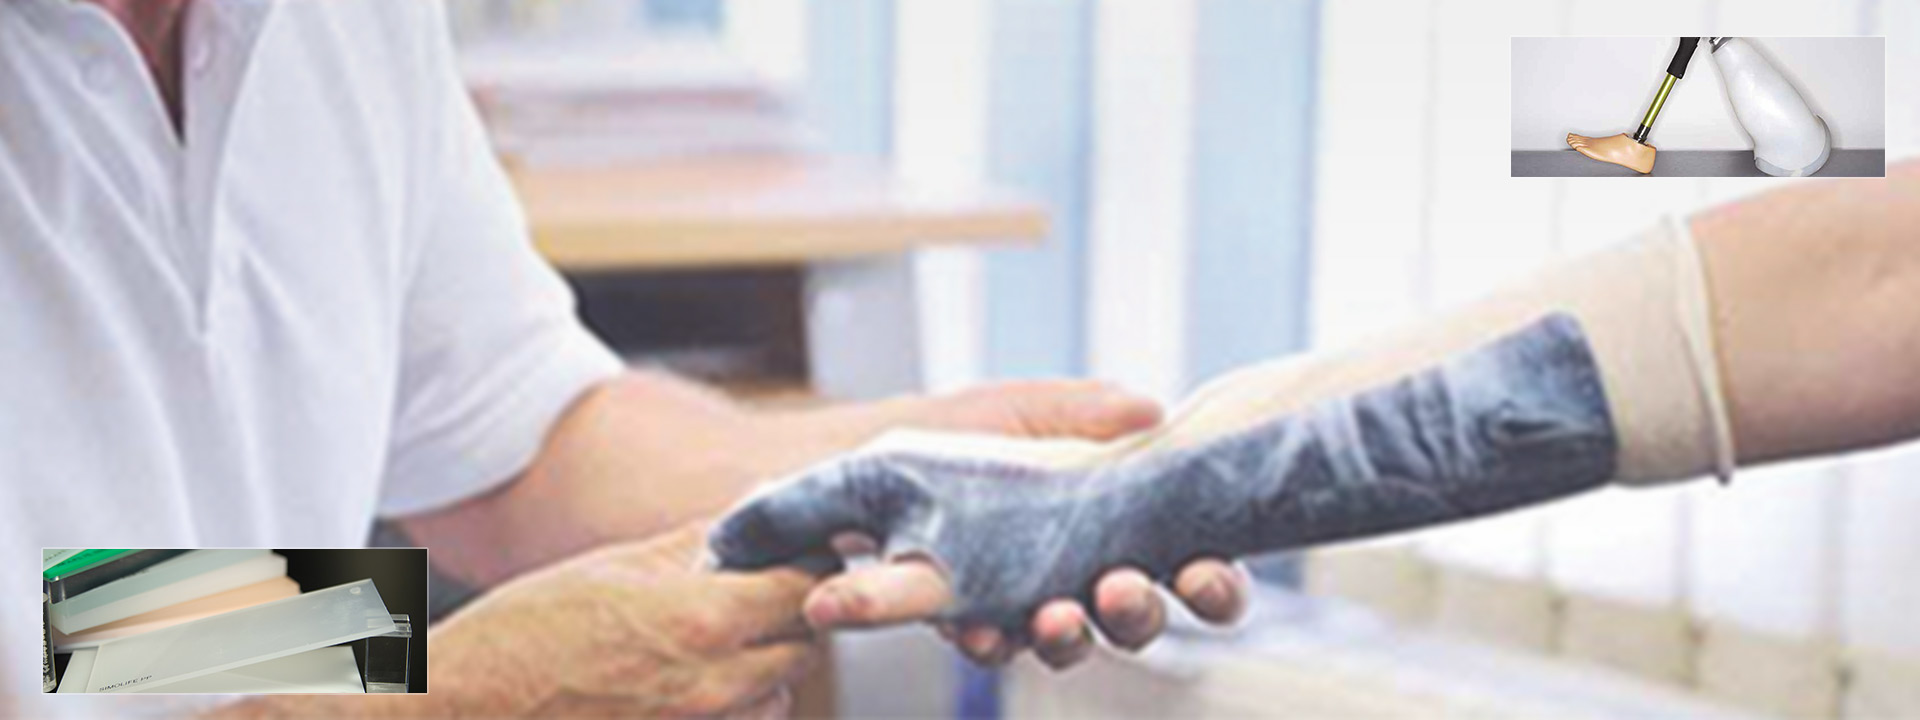 Semi-finished products for orthoses and prostheses